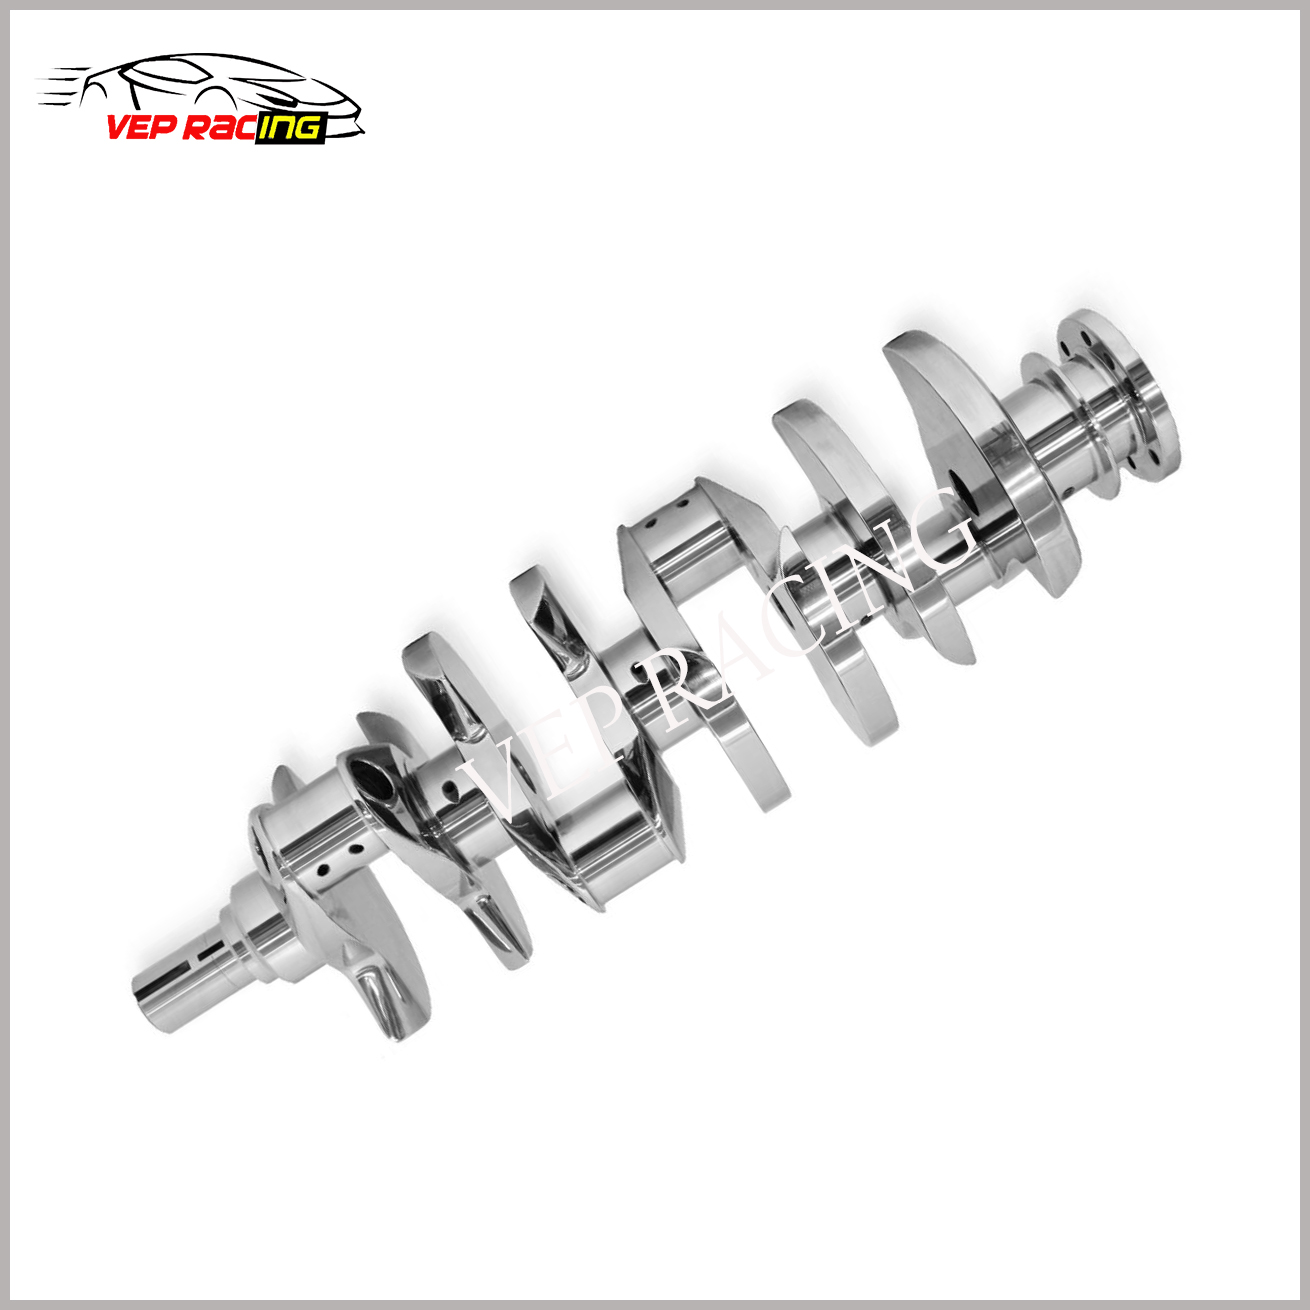 84MM Stroke TOYOTA 7K forged billet racing crankshaft